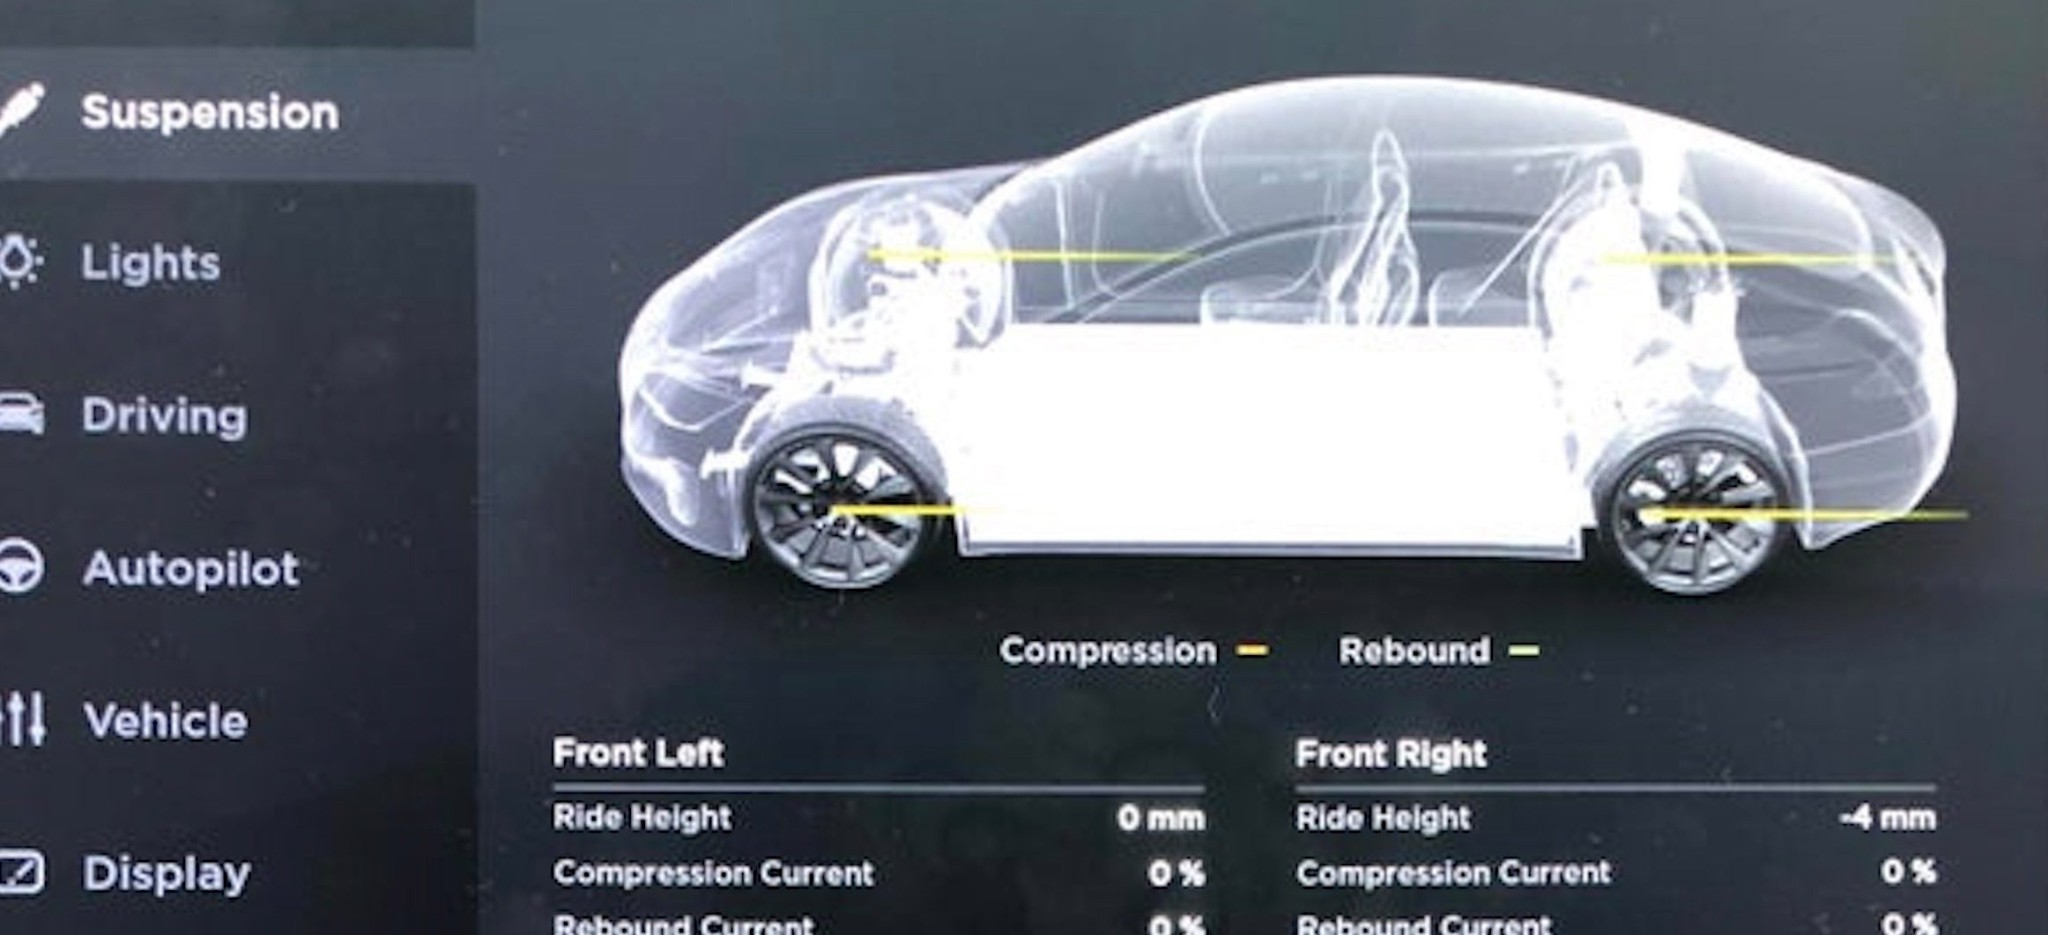 Tesla releases software update with interesting new features, suspension settings, and more - Electrek